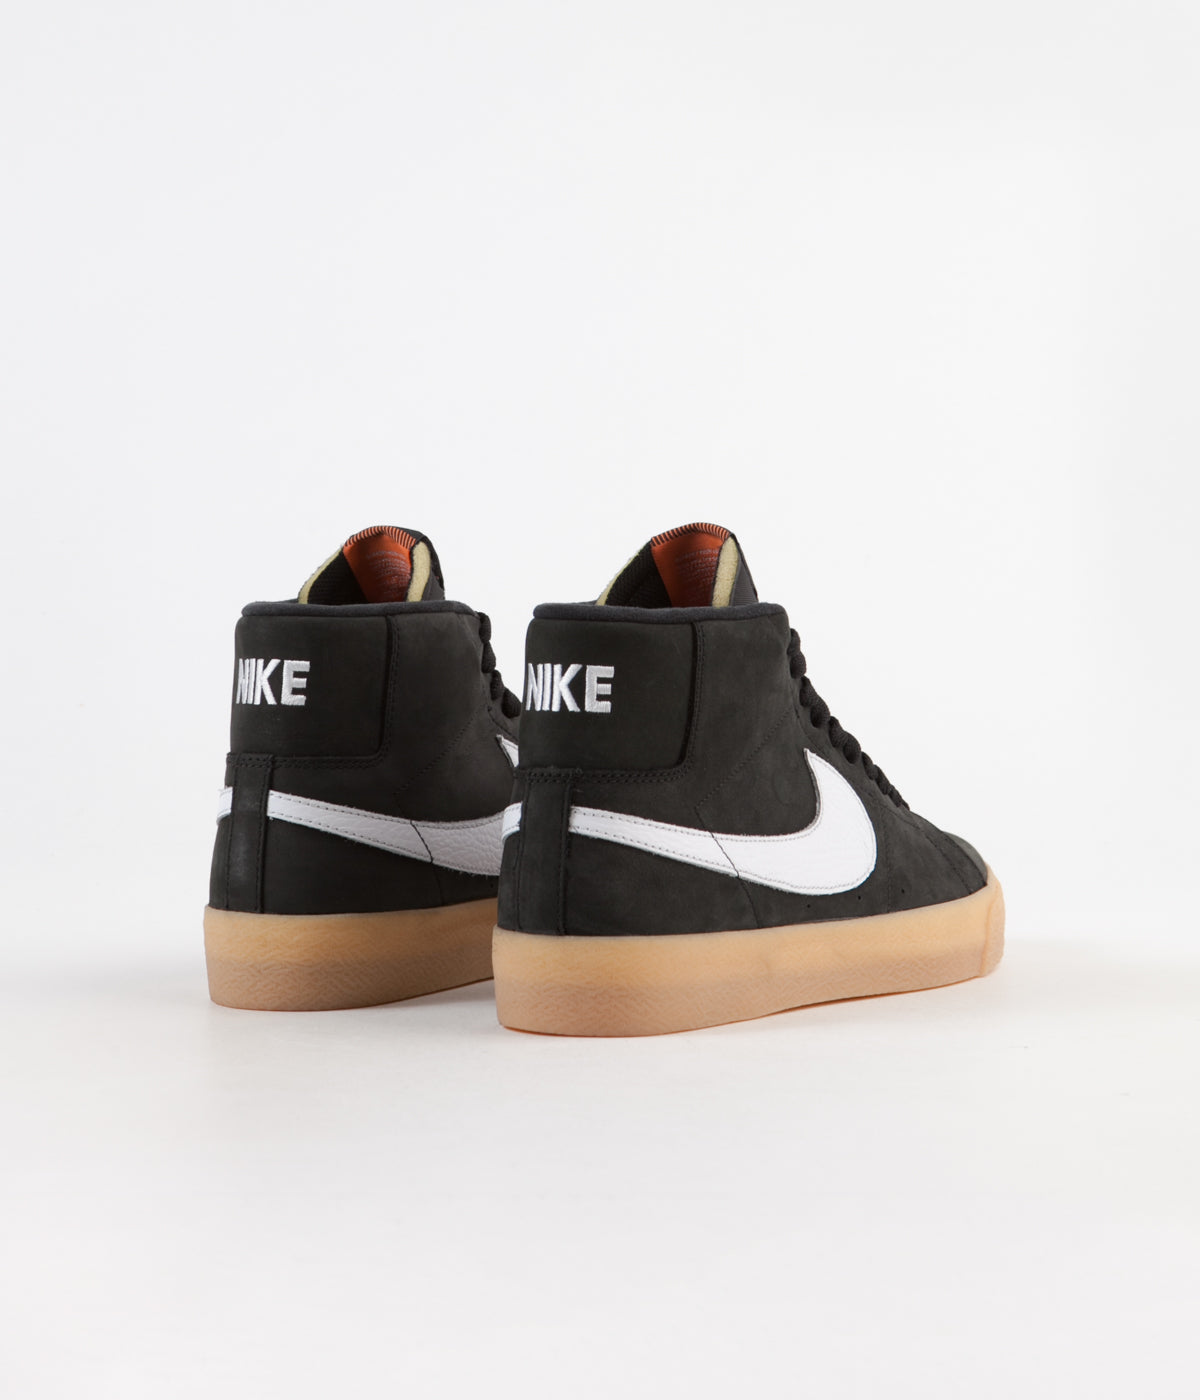 purchase cheap 4aff4 22557 ... Nike SB Orange Label Blazer Mid Shoes - Black   White - Safety Orange  ...